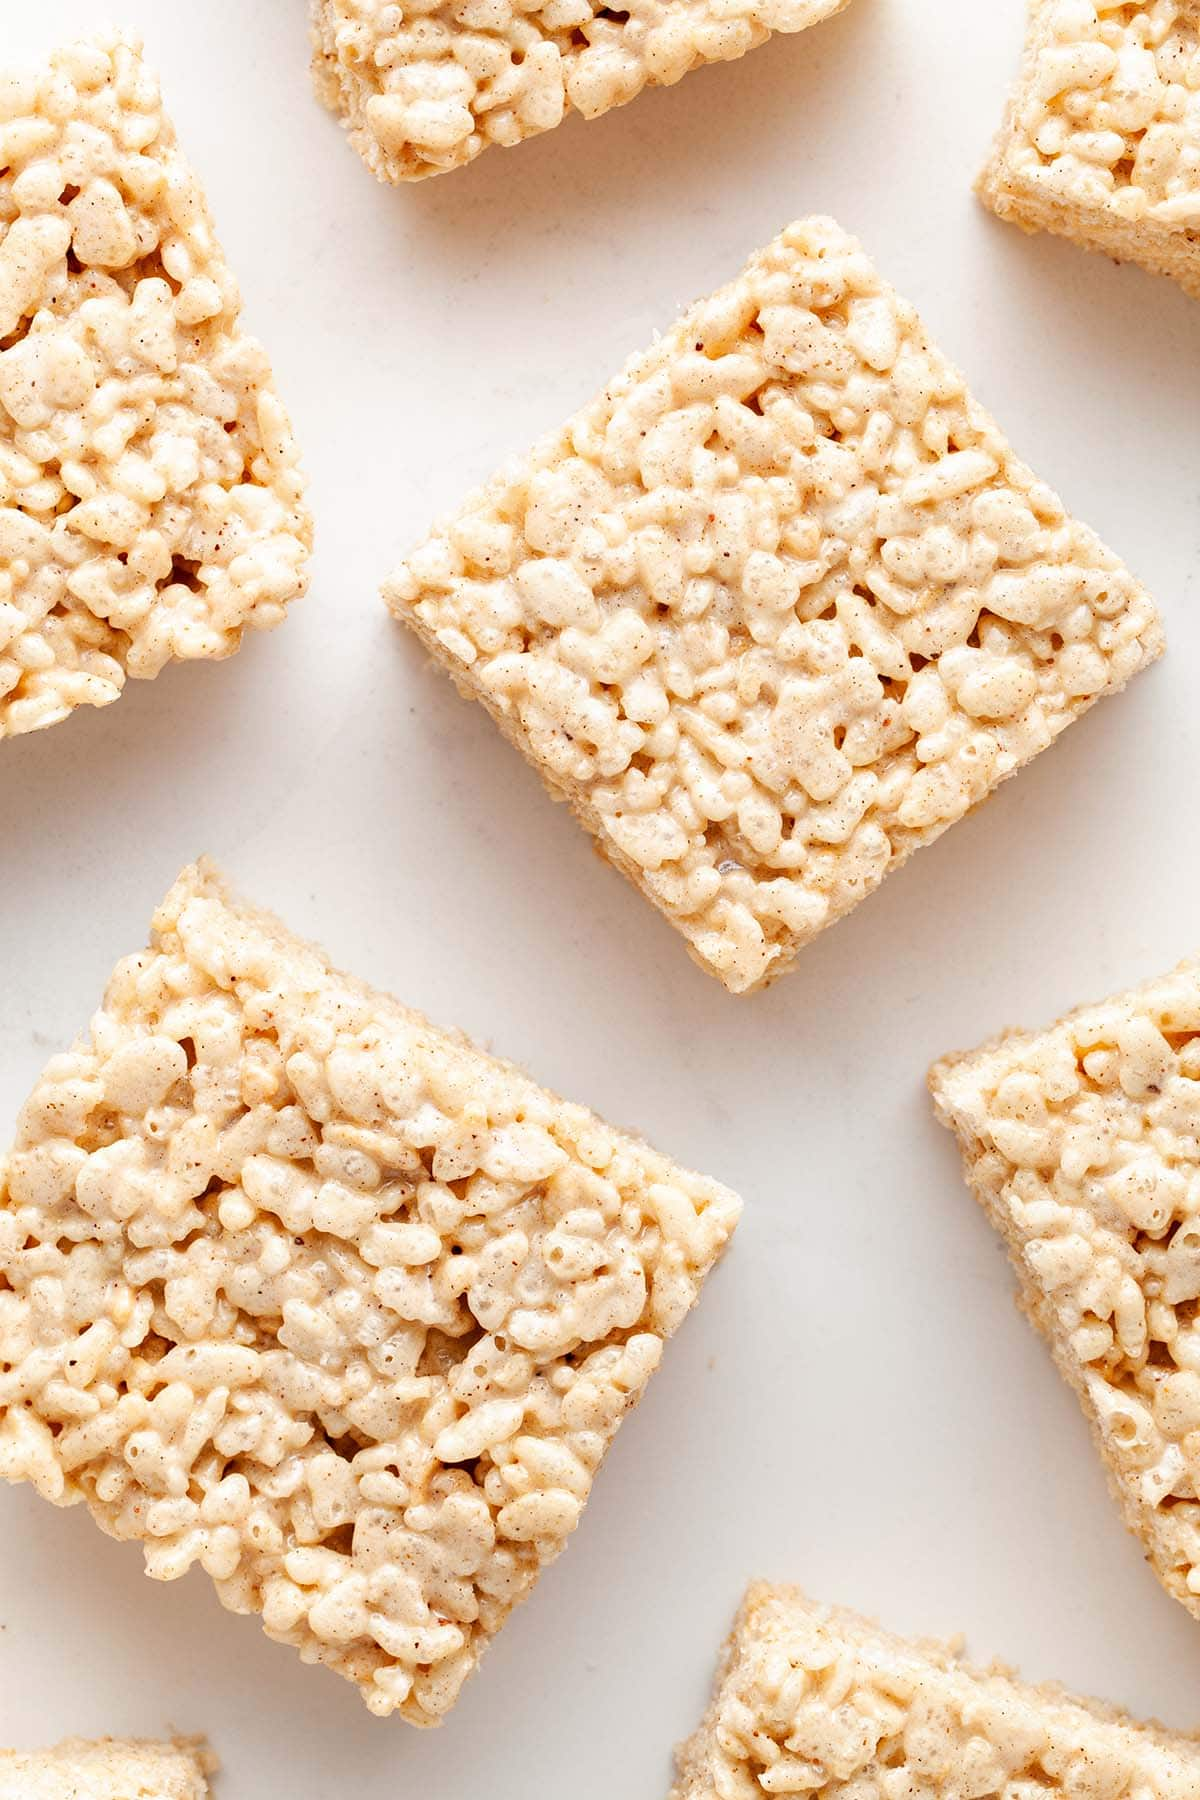 Rice Krispie squares laid out on a white surface.